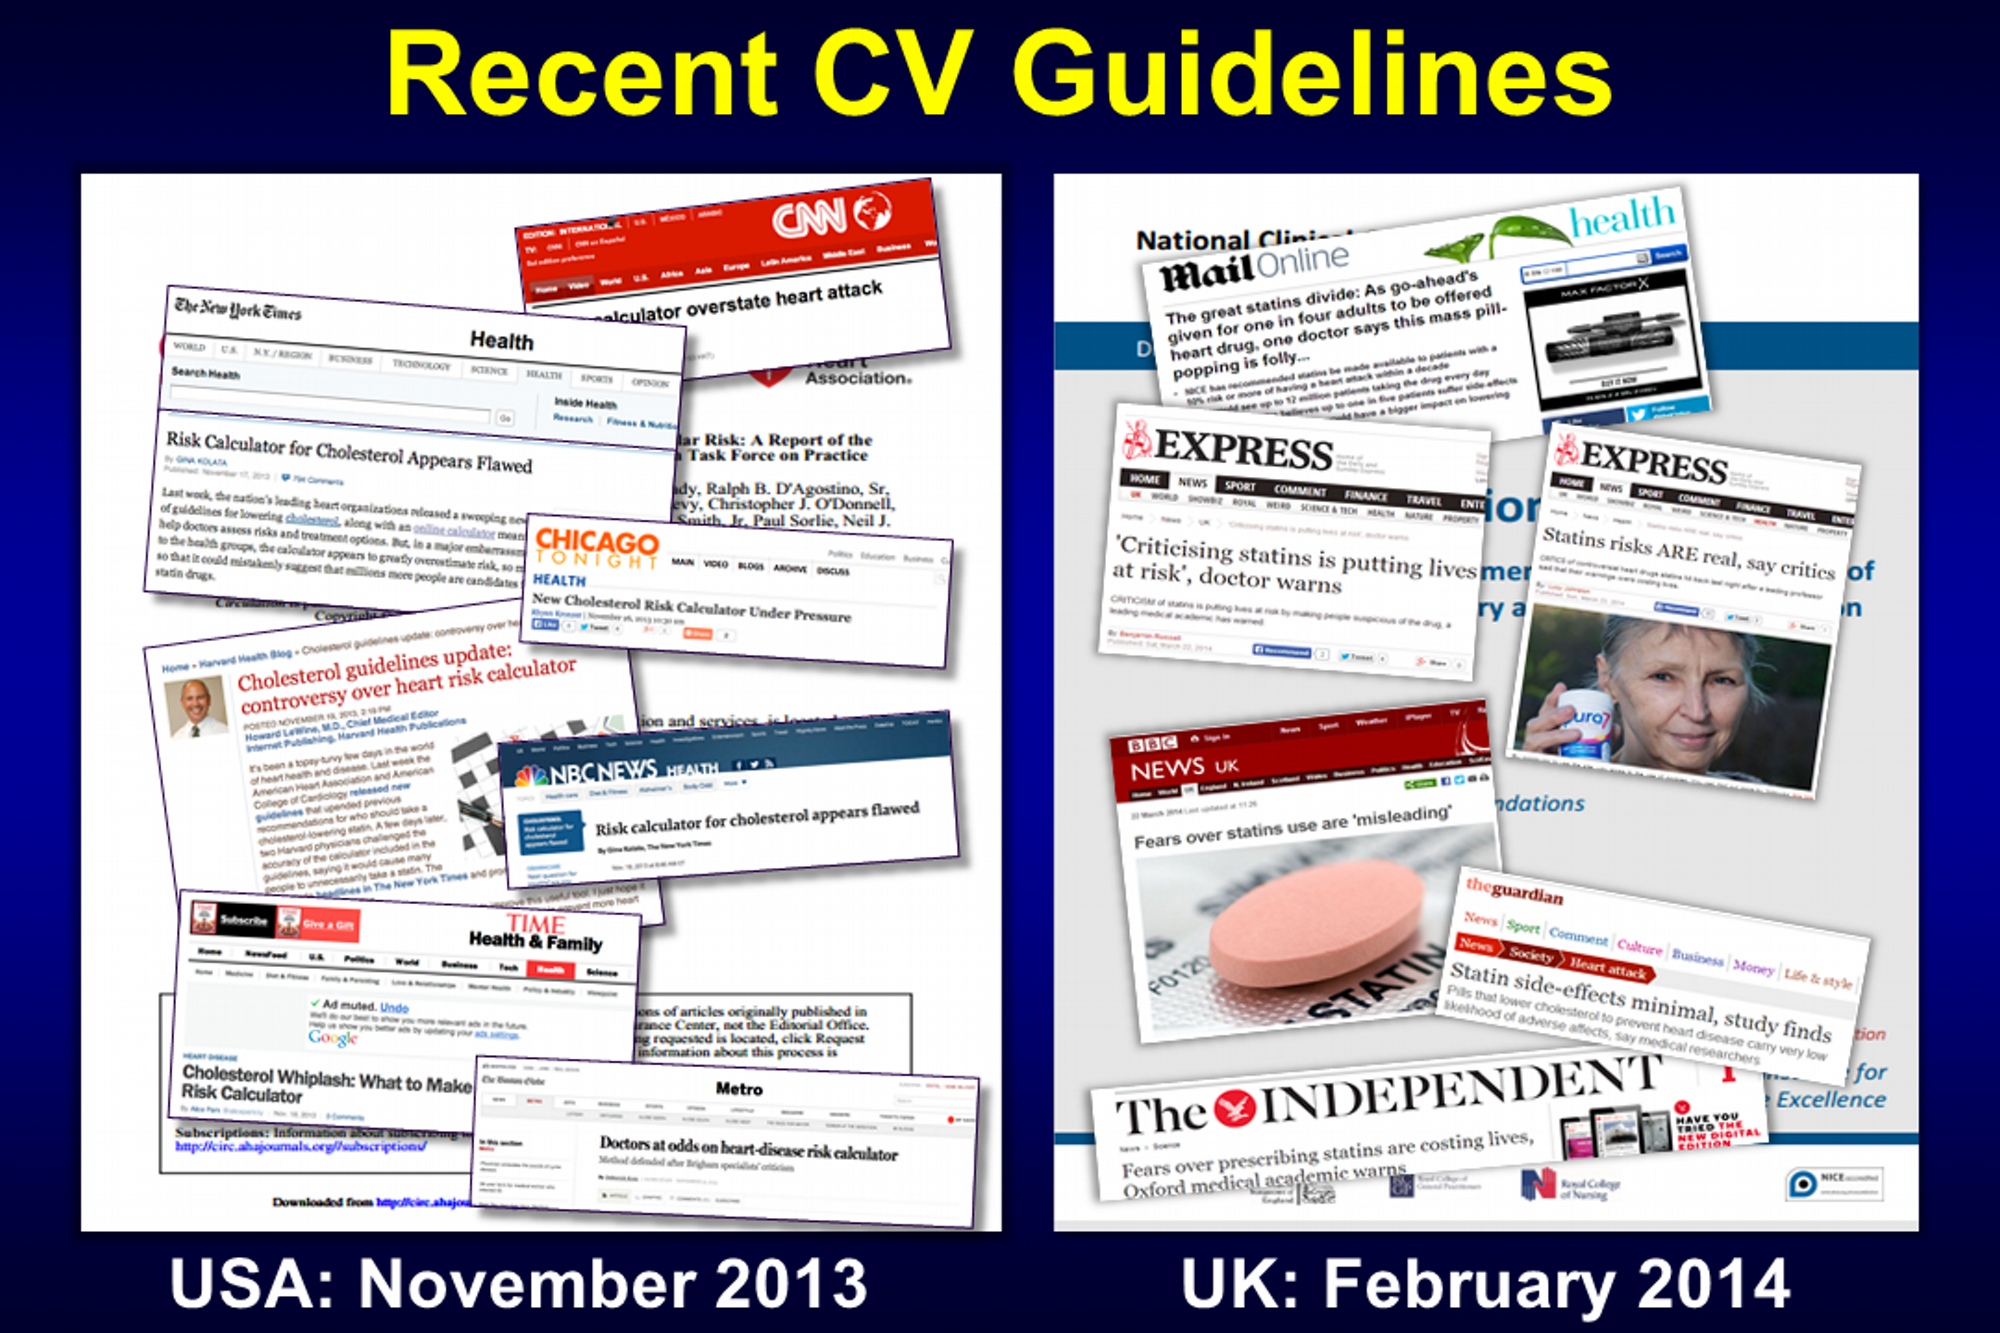 slides  applying latest insights in cv risk in clinical practice  a practical model